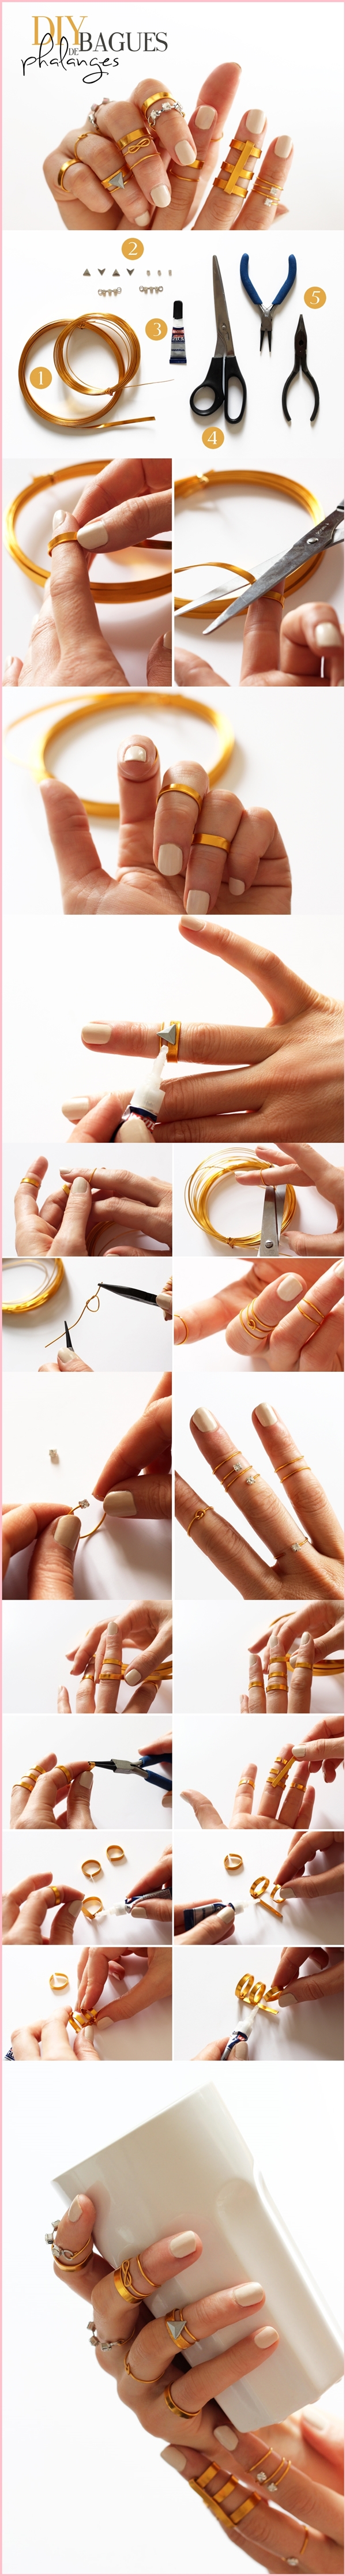 easy-peasy-diy-wire-rings-tutorials-for-teens